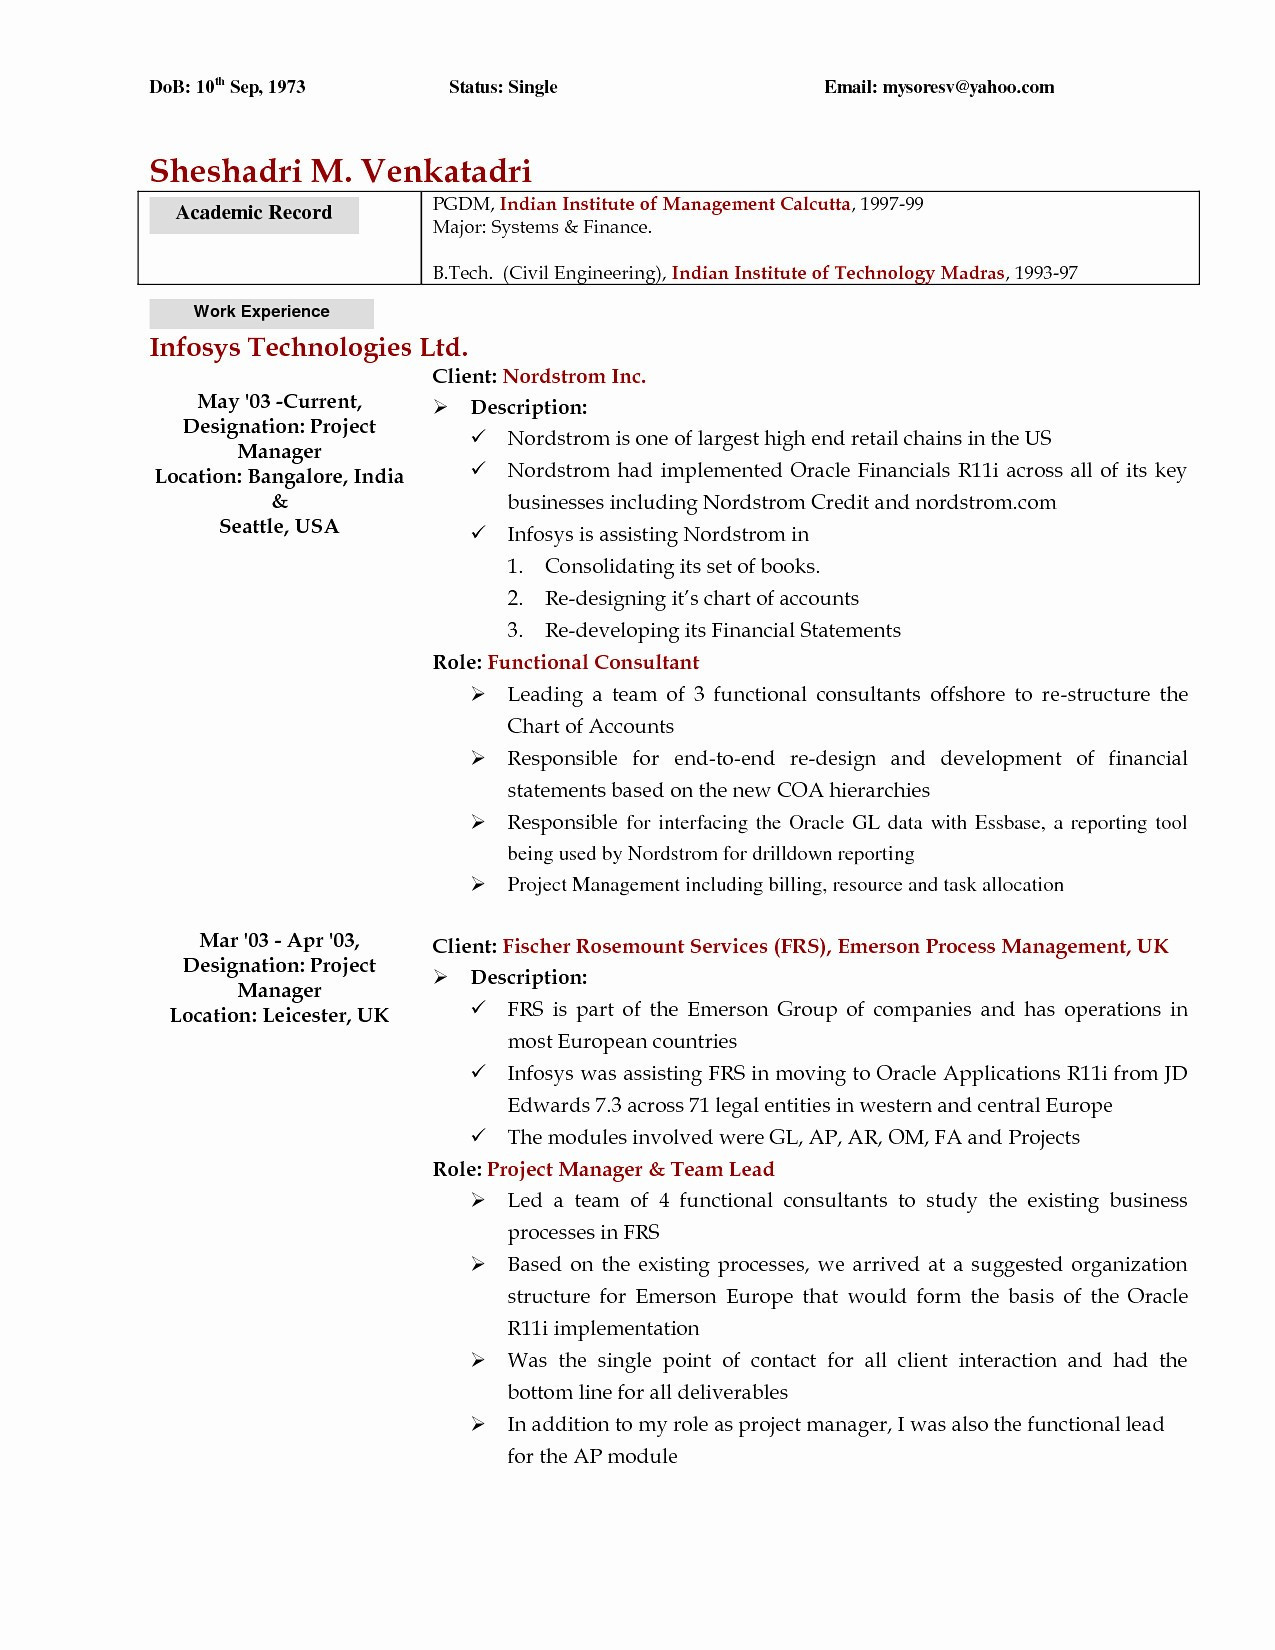 nursing resume format Collection-Resume Template For Rn Refrence Nurse Resume Skills New Free Registered Nurse Resume Templates 18-q